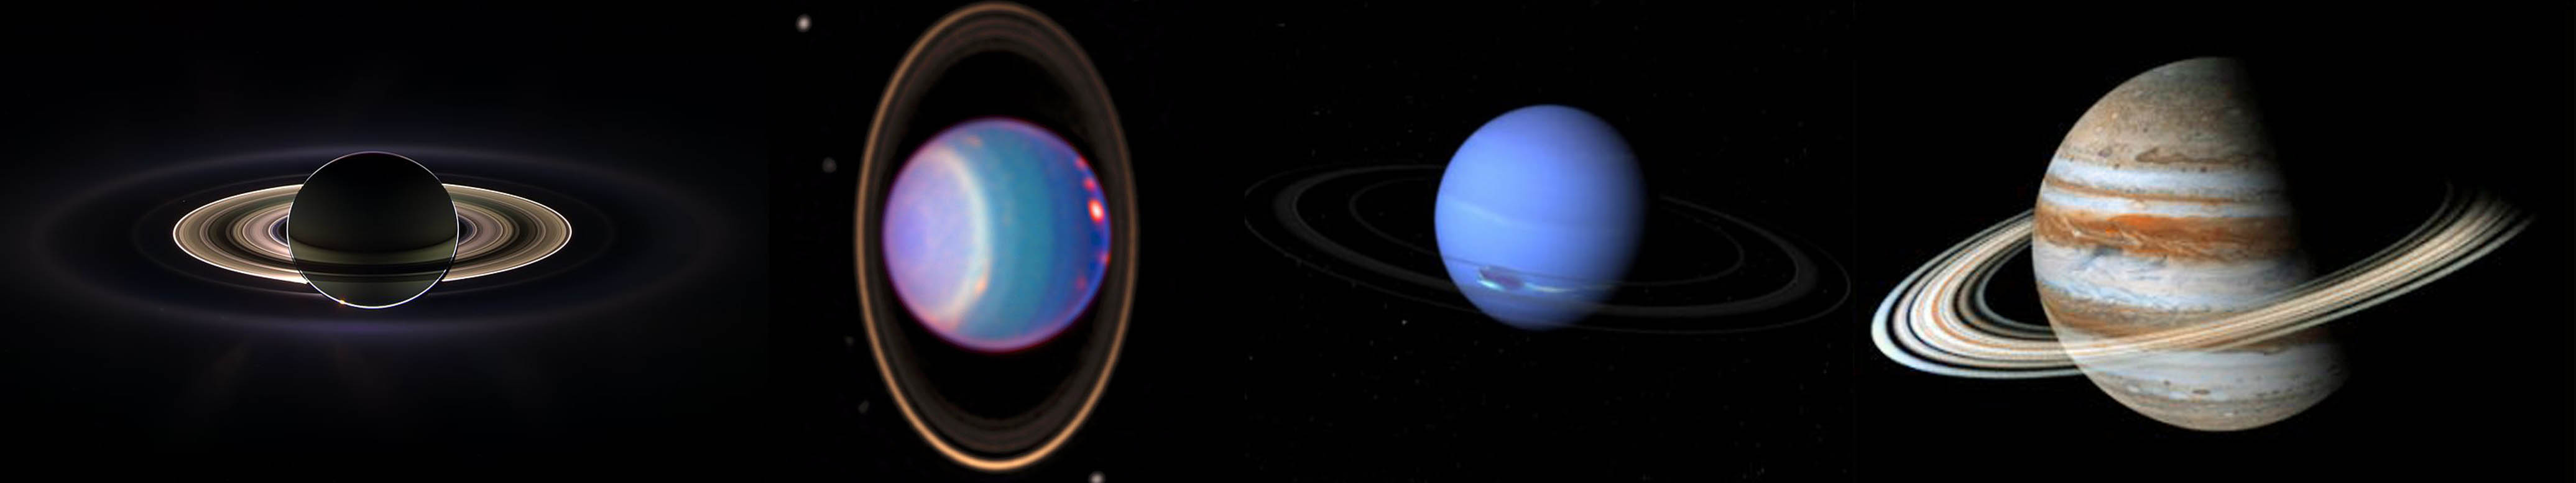 Oahspe Study PLANETARY FORMATION AND RINGS OF THE GAS PLANETS